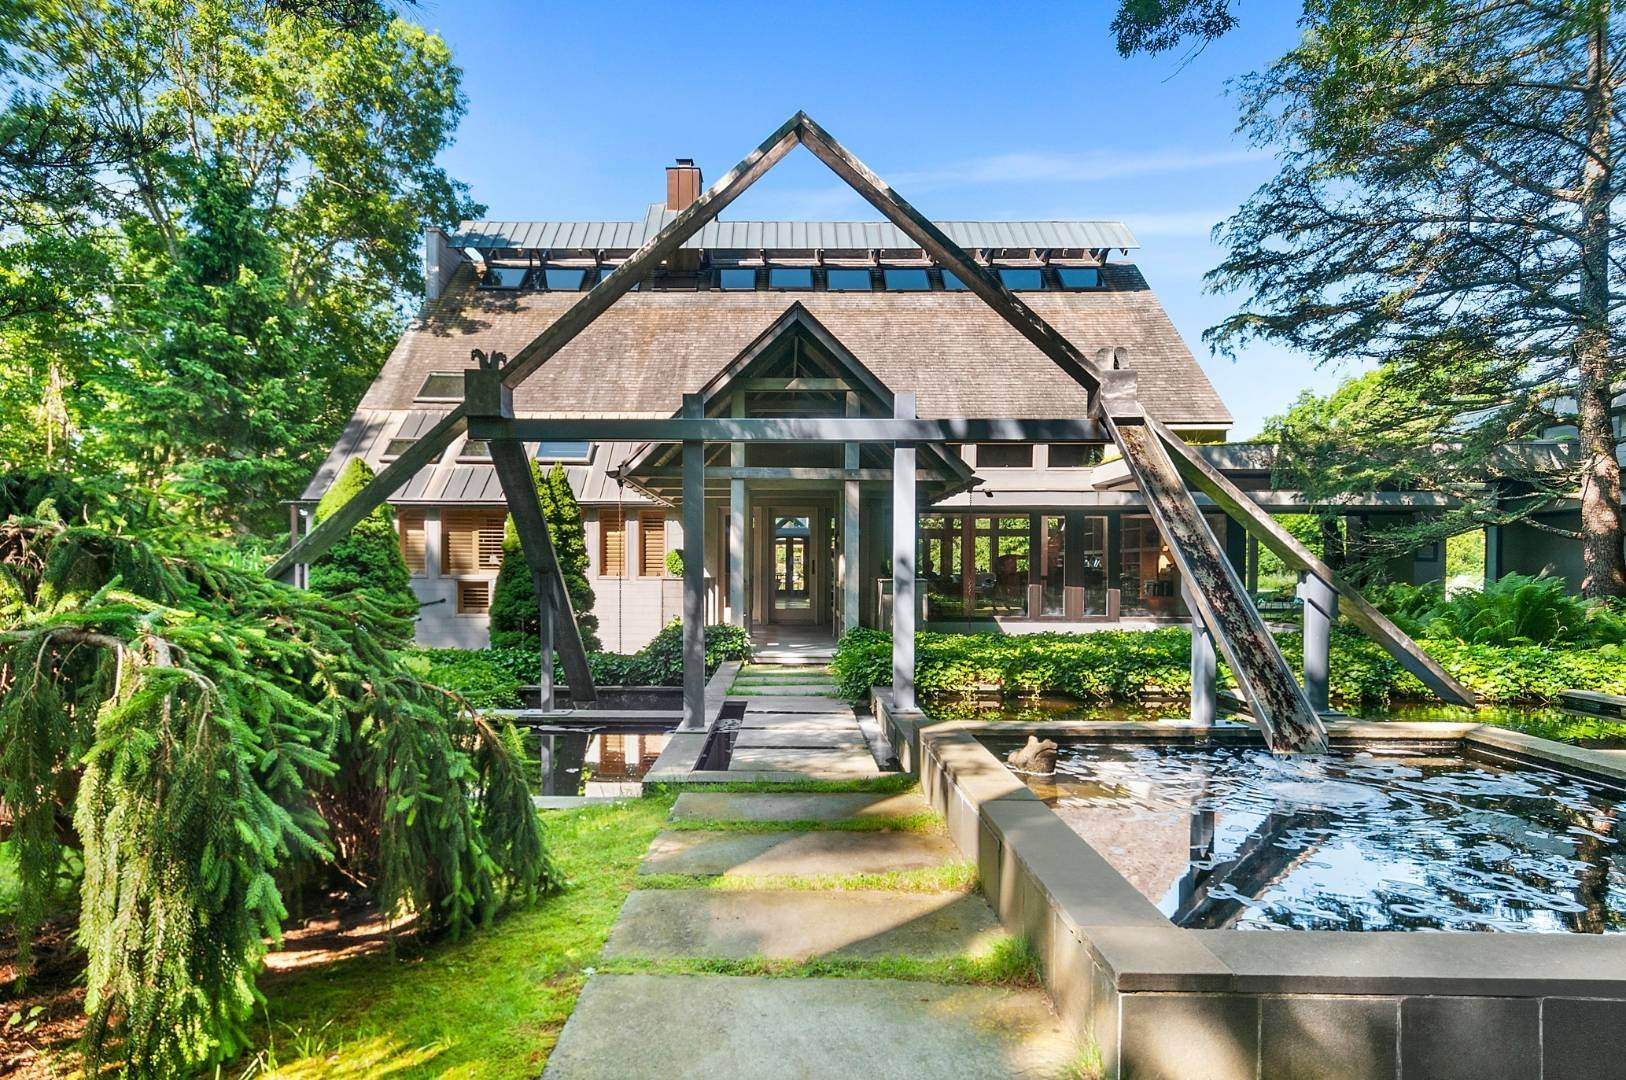 Single Family Home for Sale at Private Oasis In Wainscott South 40 Sayres Path, Wainscott, NY 11975